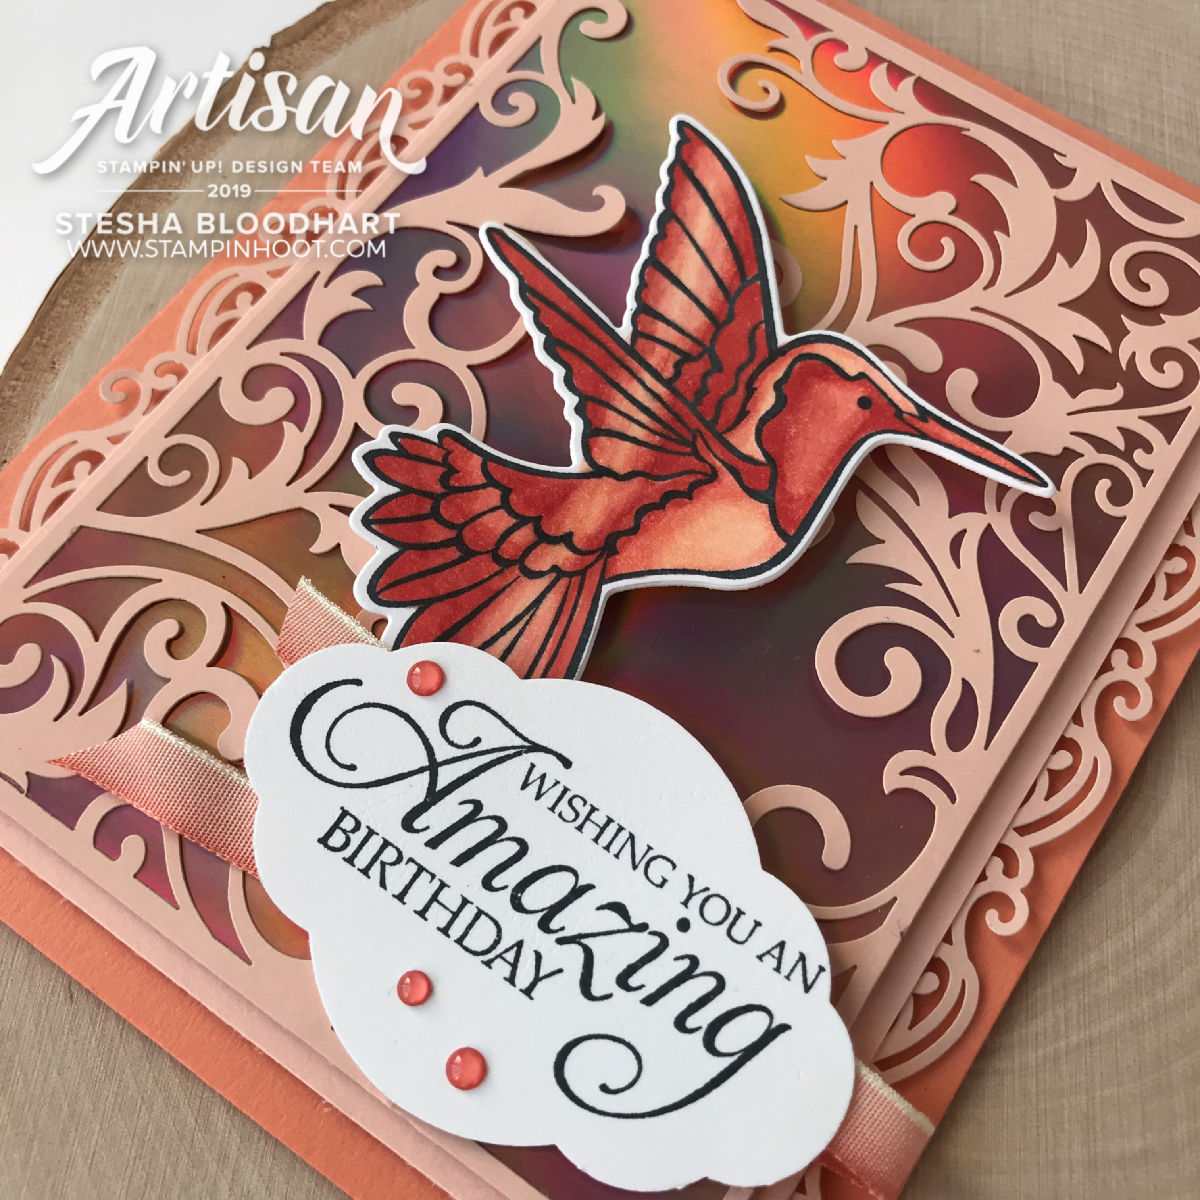 Humming Along Bundle and Grapefruit Grove Foil Sheets by Stampin' Up! Card created by Stesha Bloodhart, Stampin' Hoot! #stampreviewcrew #steshabloodhart #stampinhoot